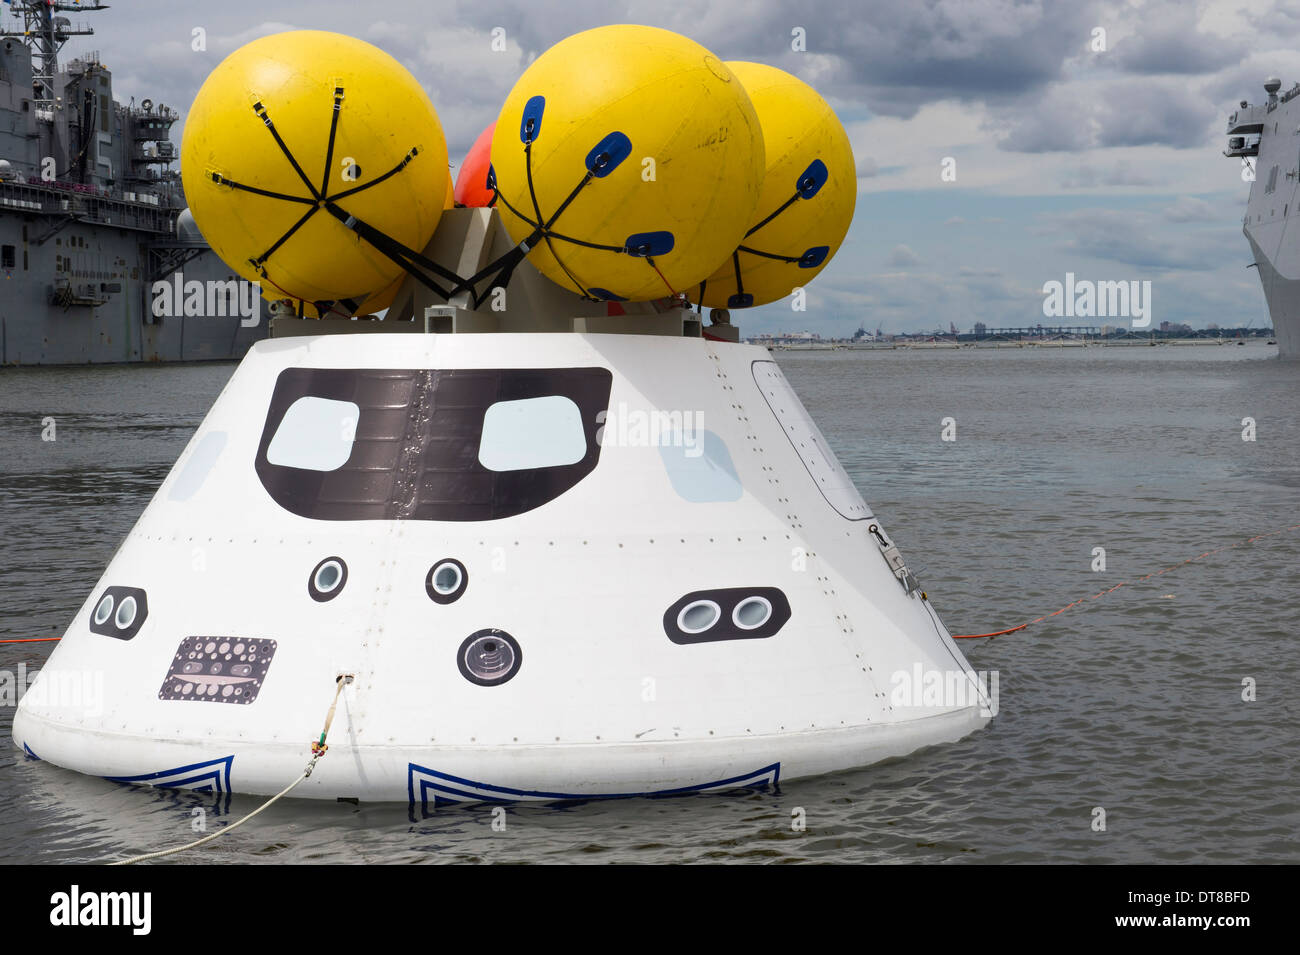 An Orion capsule before being towed into the well deck of USS Arlington. - Stock Image